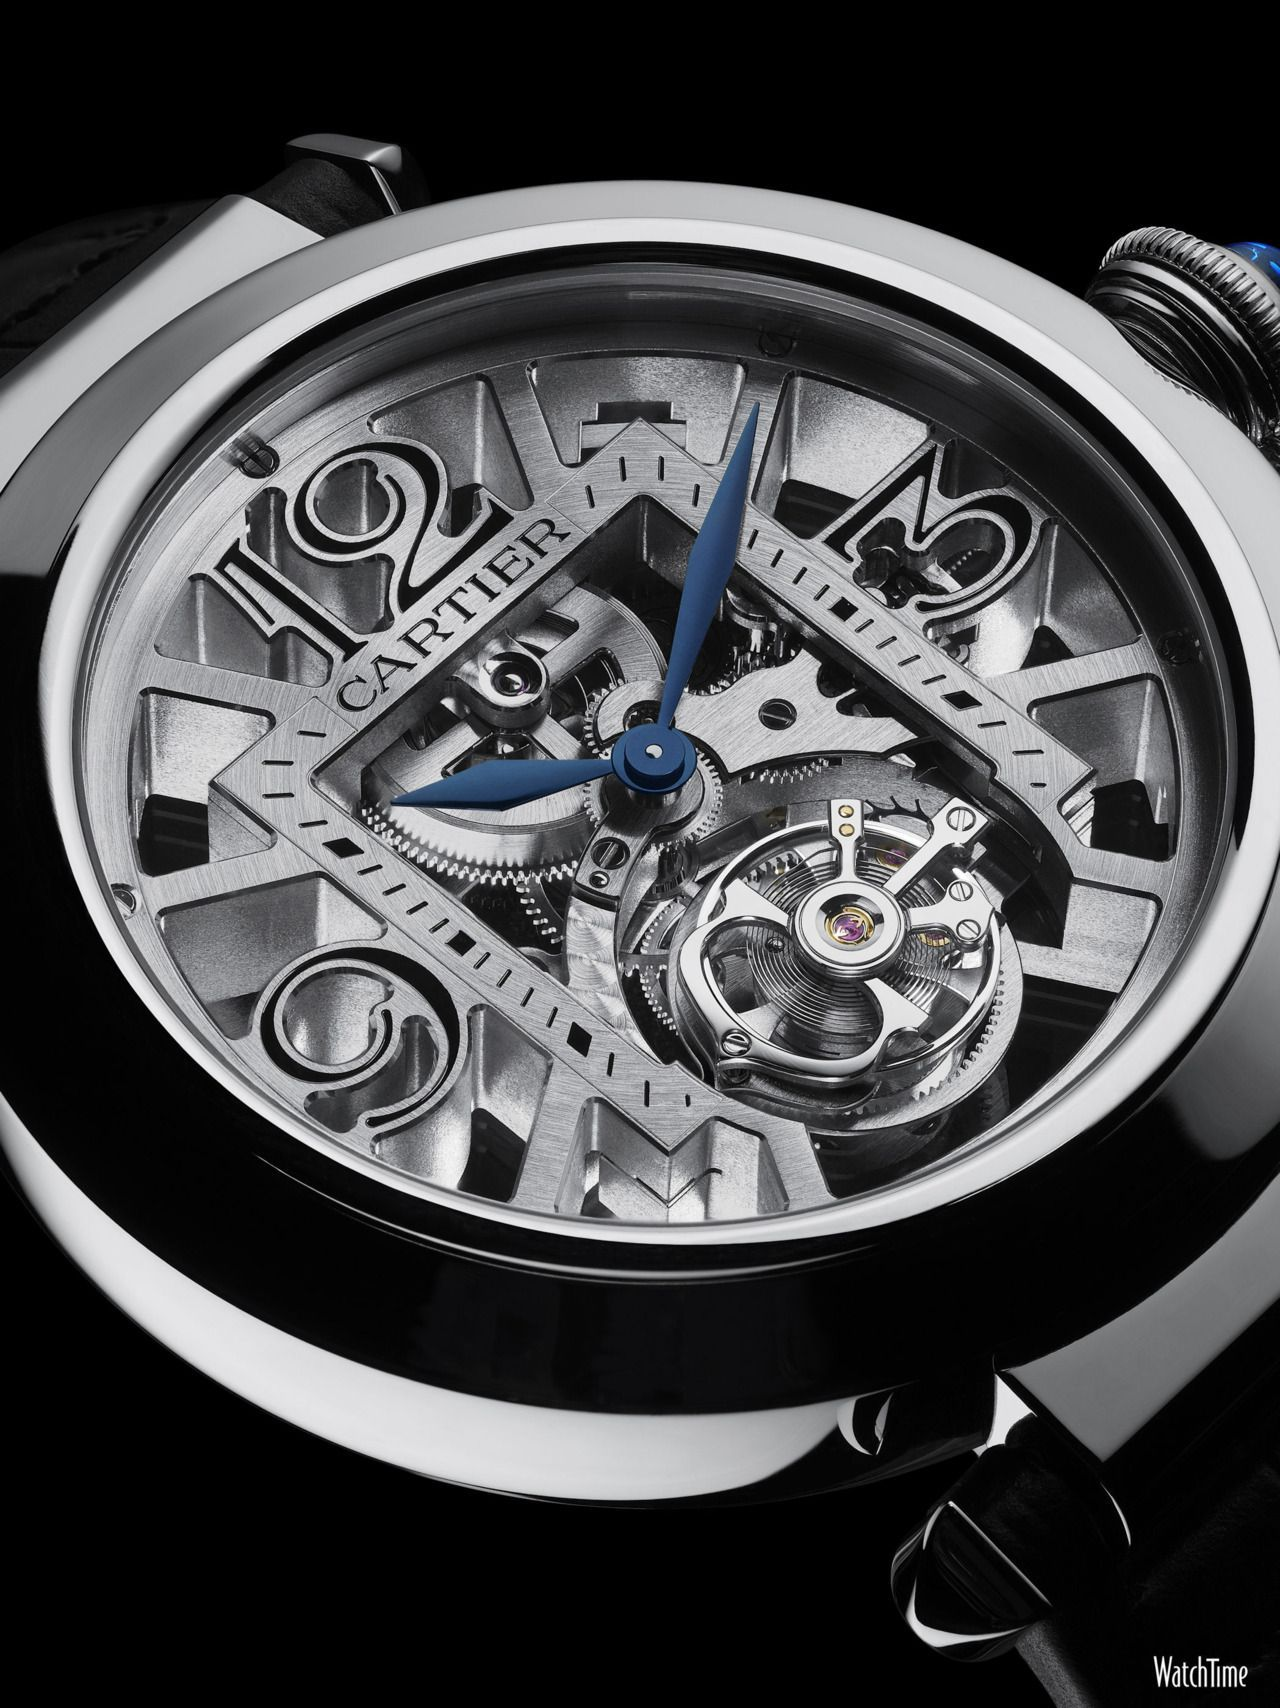 Cartier Watches Luxury Luxury Watches For Men Skeleton Watches Expensive Watches